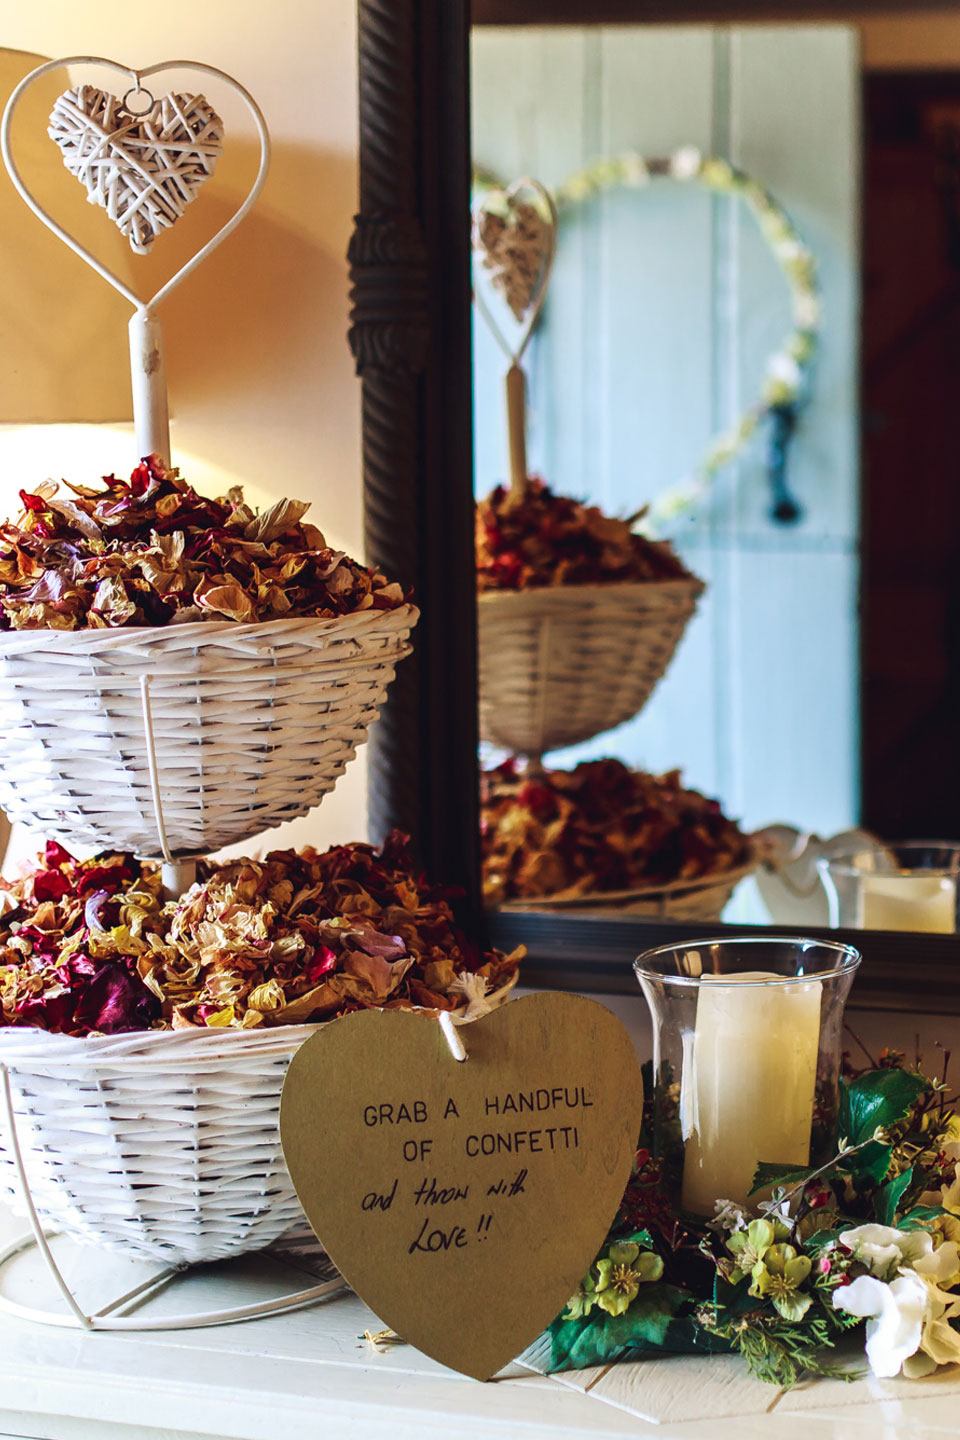 A basket of confetti stands ready for guests to throw